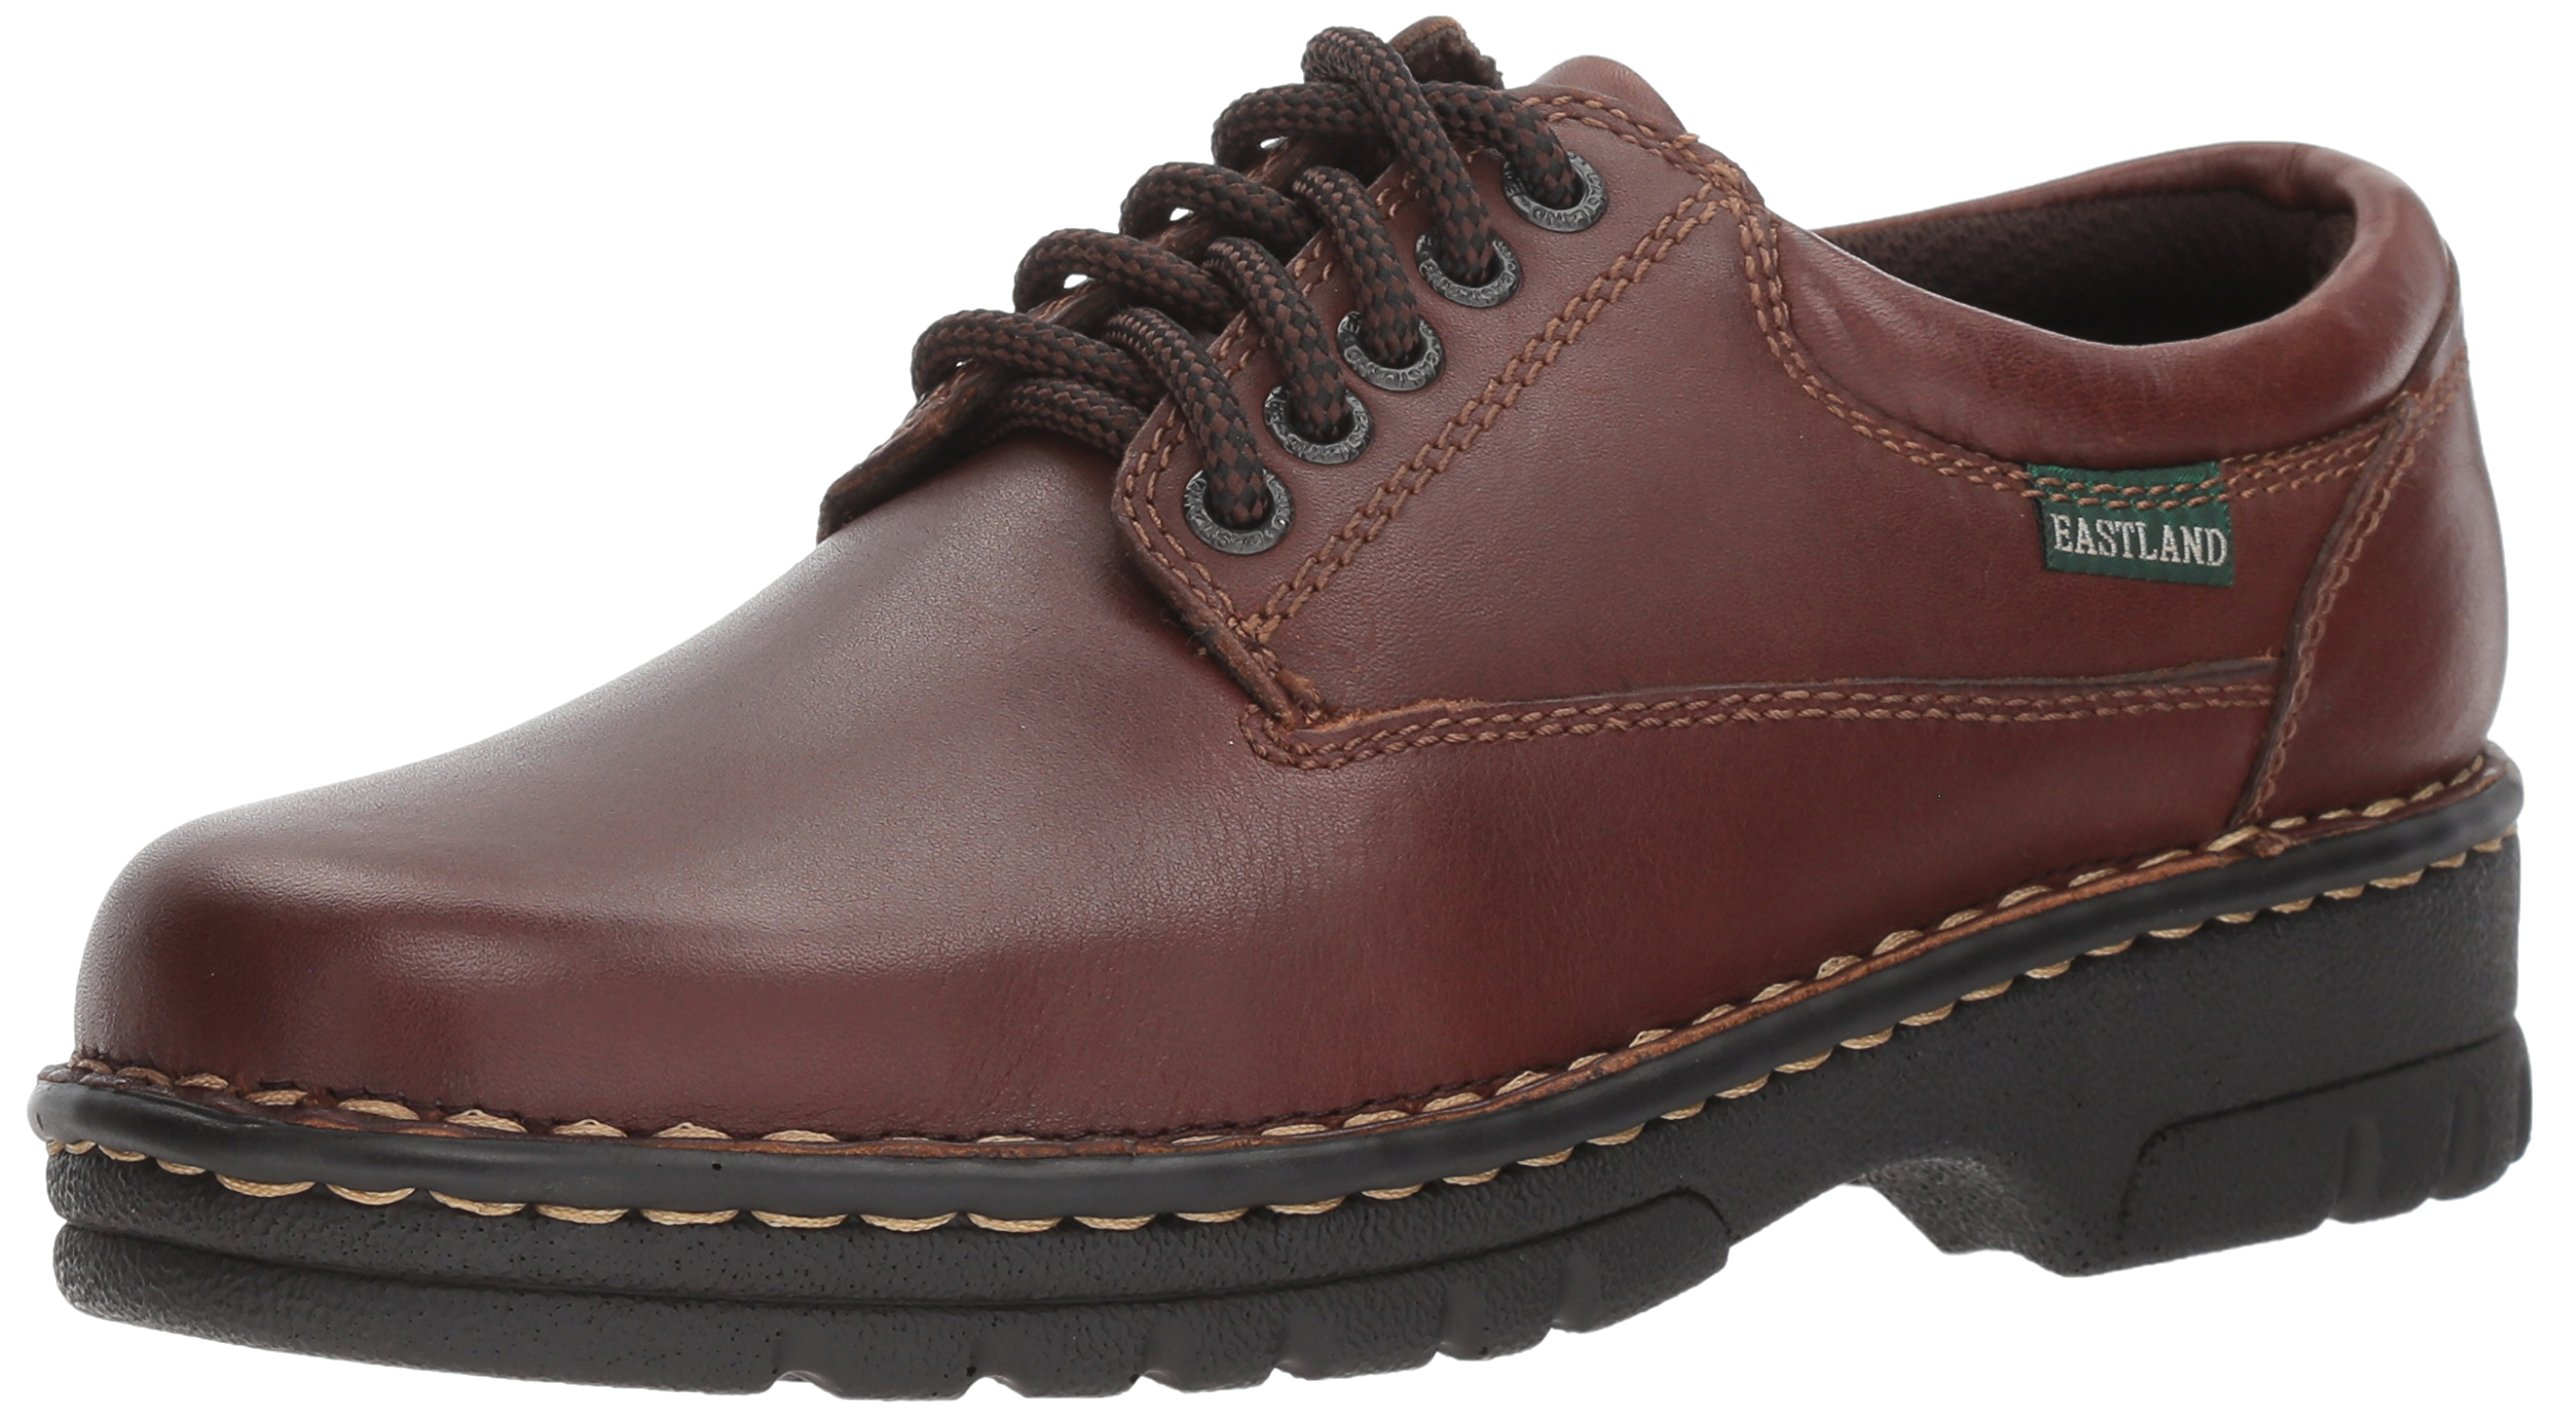 Eastland Women's Plainview Oxford,Brown,7.5 M US by Eastland